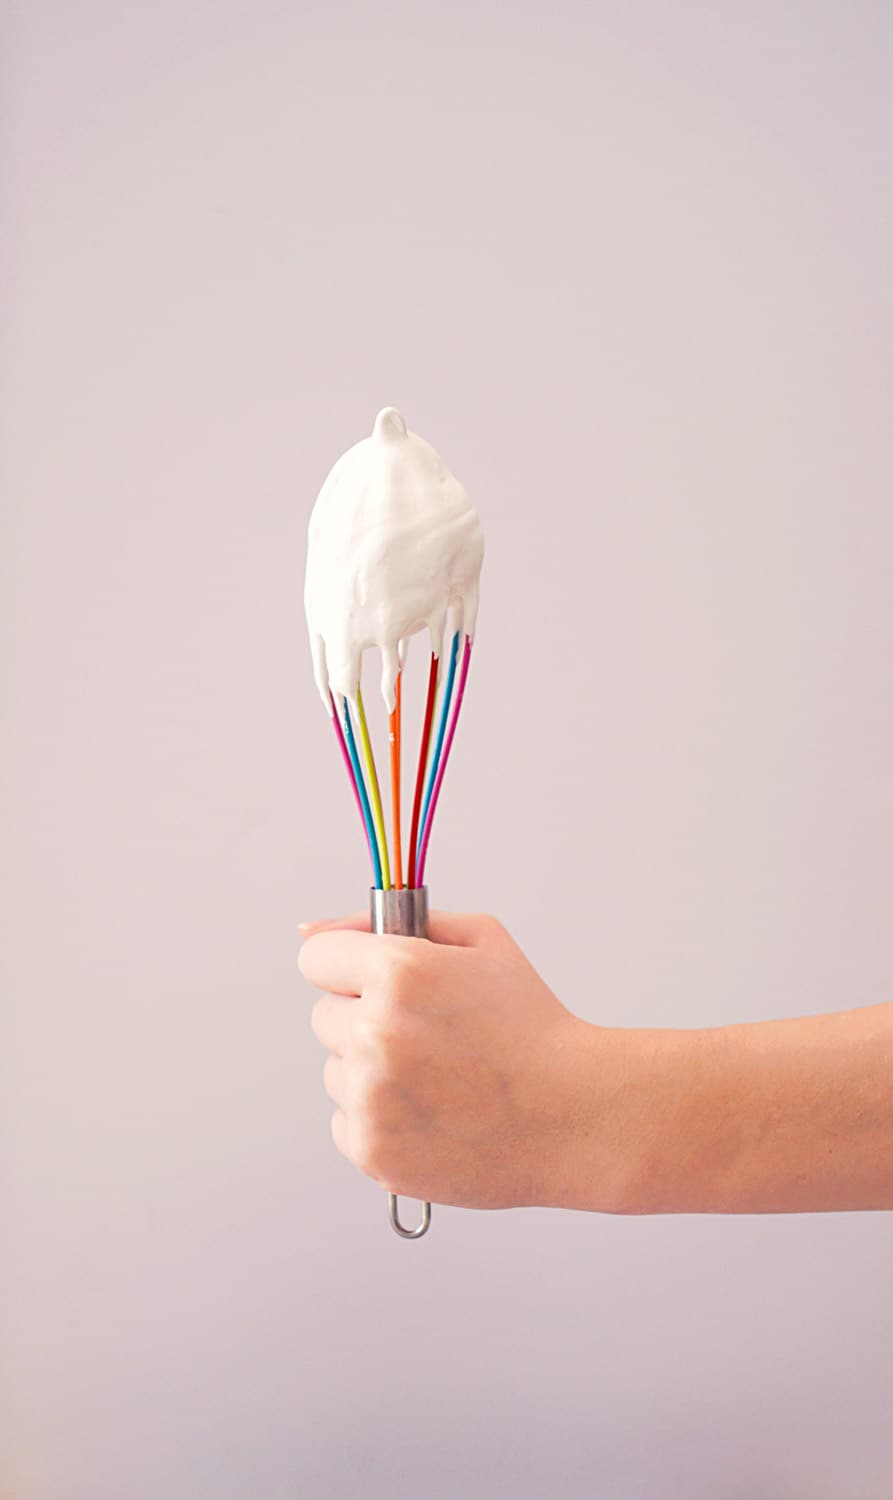 A hand holding a whisk covered in buttercream icing.